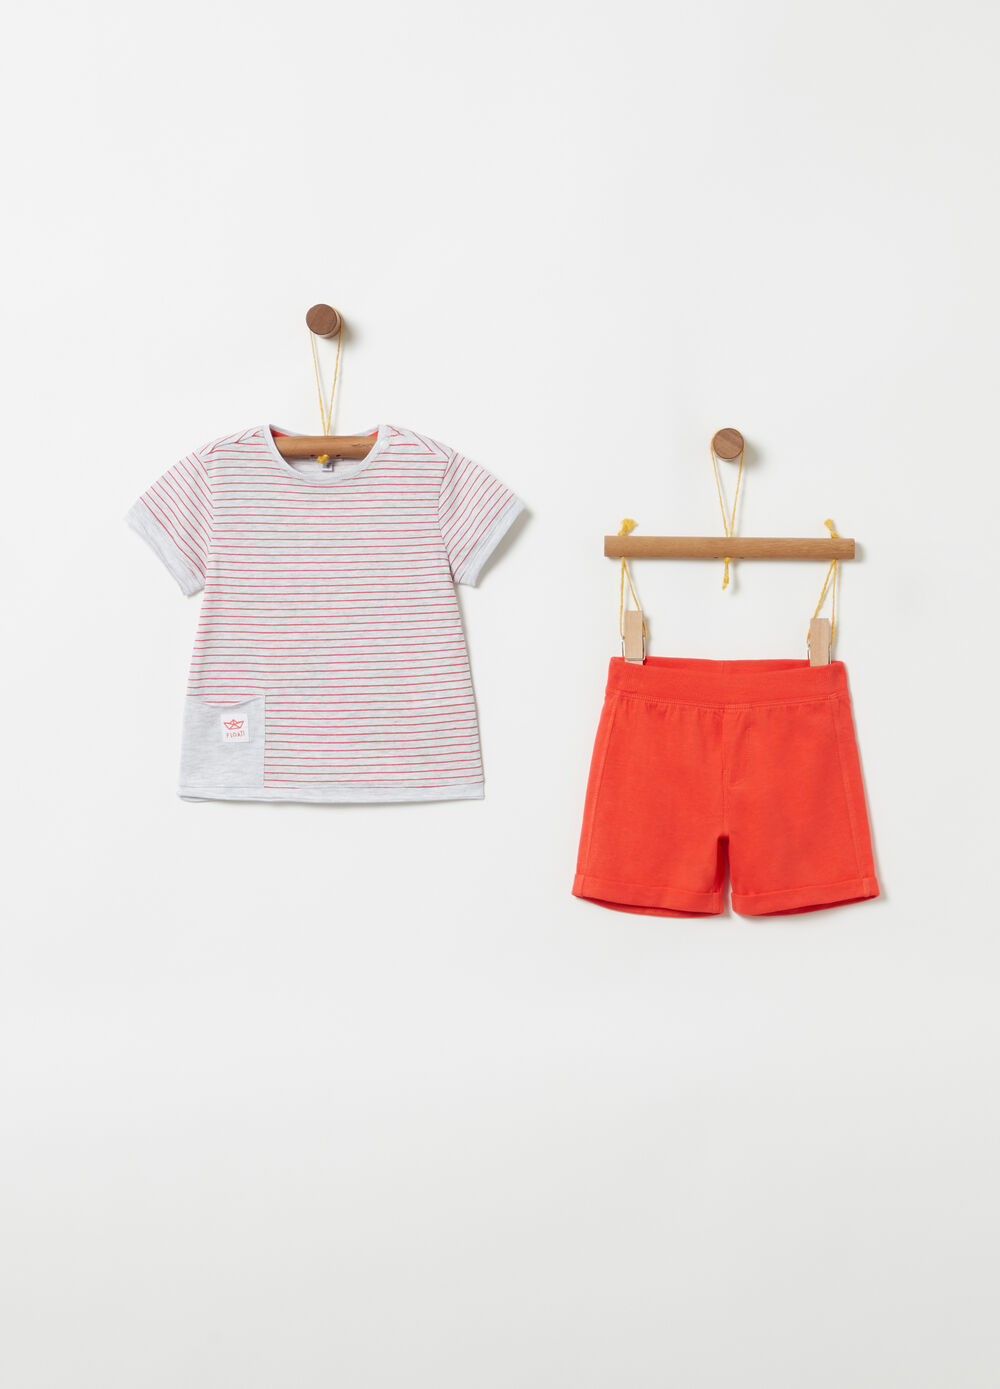 Jogging set with T-shirt and shorts with stripes and ribbing